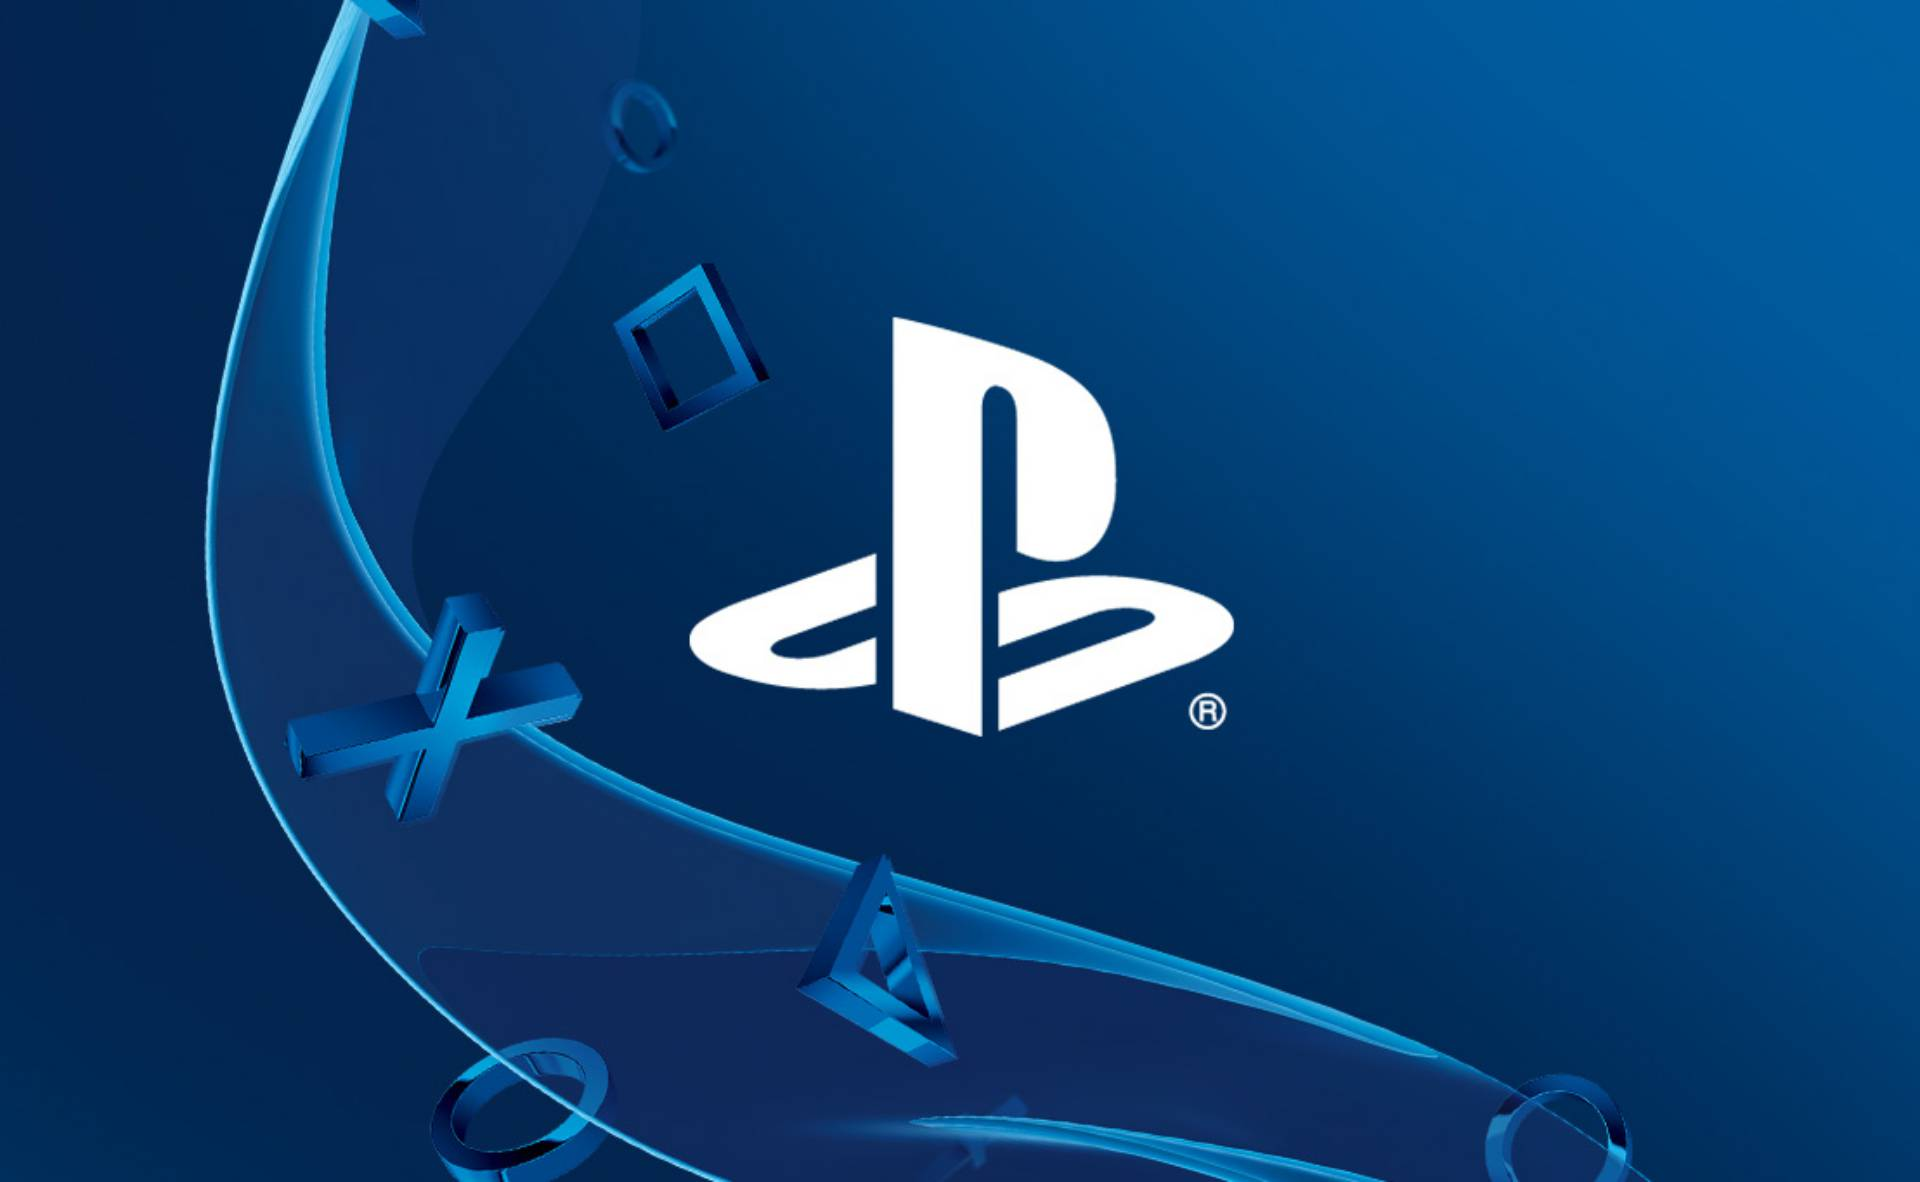 PlayStation Outlines E3 Conference Plans